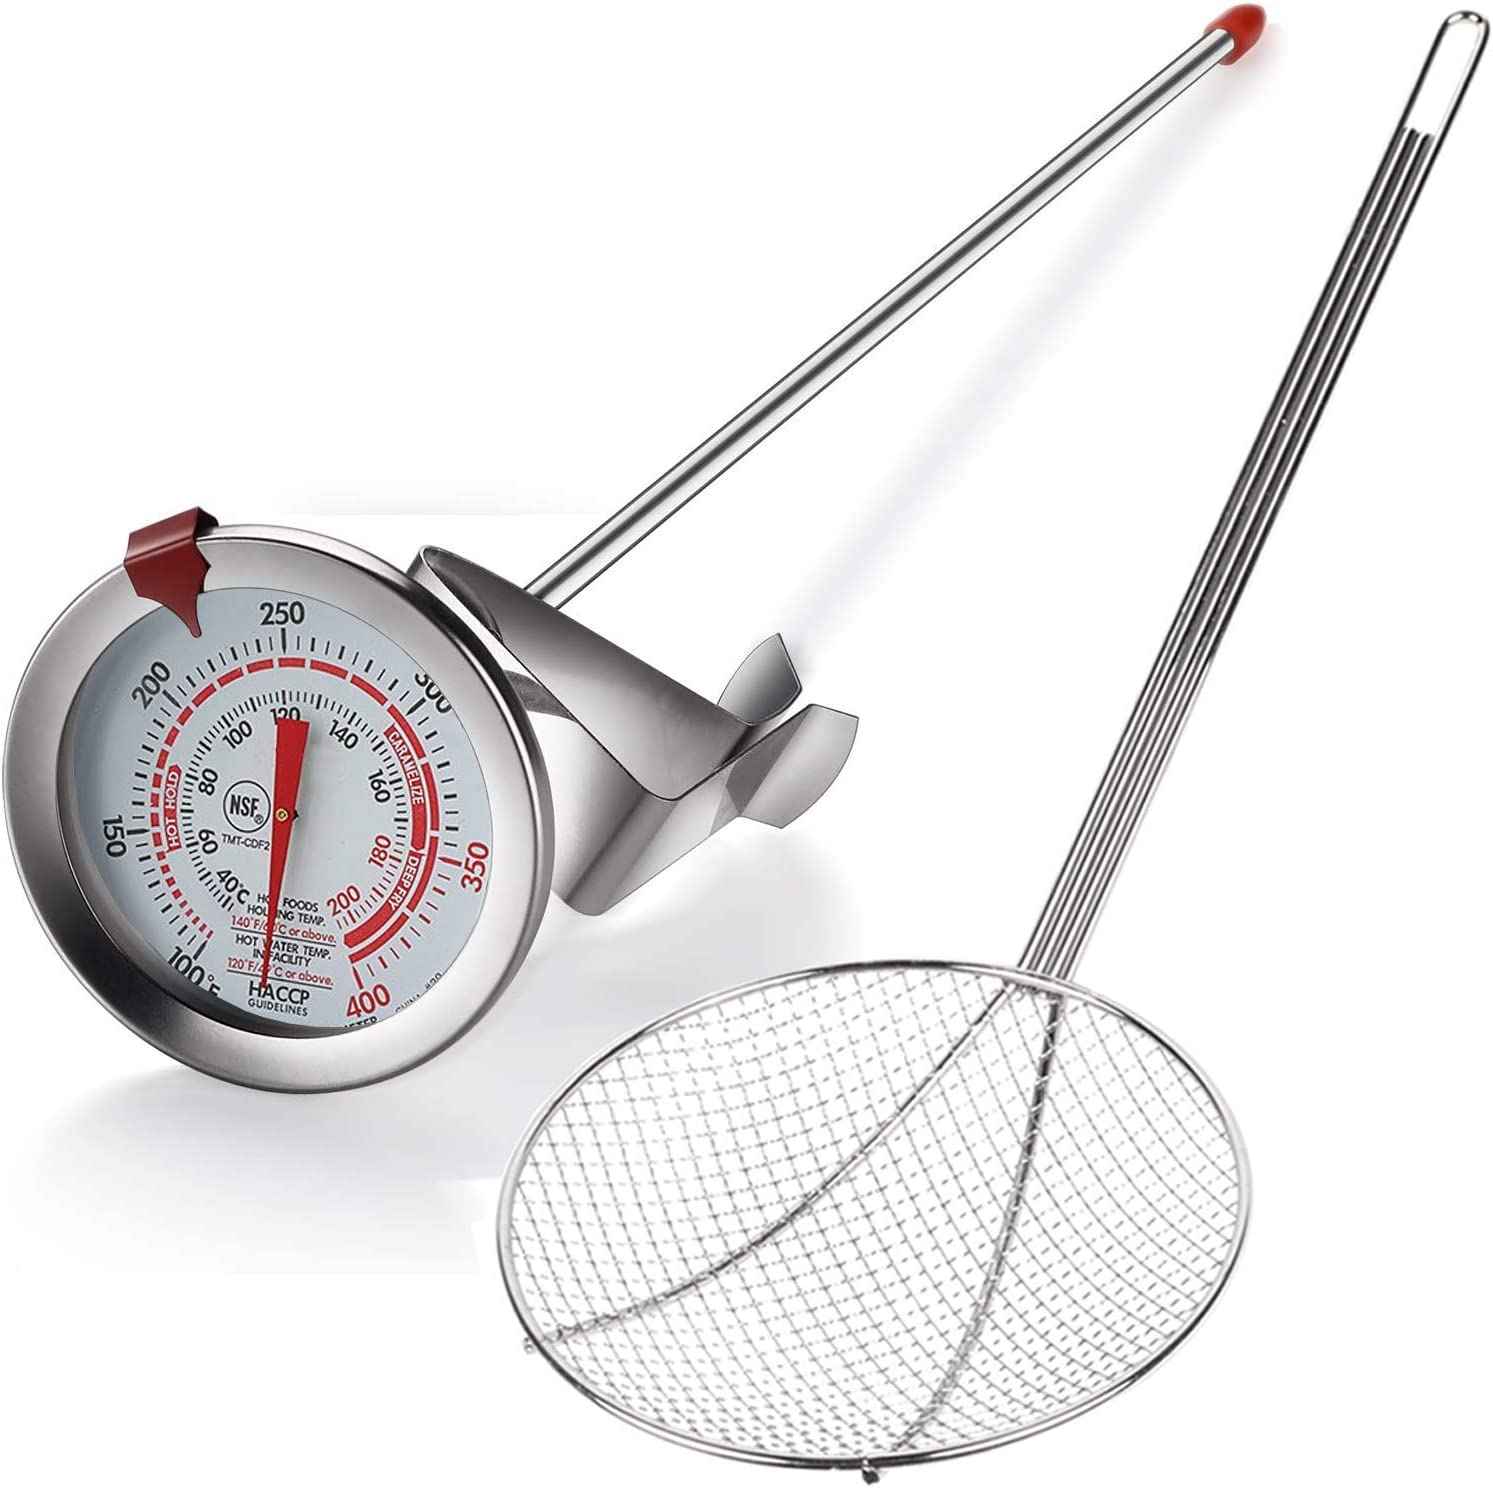 Oil Thermometer Deep Fry + Skimmer Spoon, Deep Fryer Thermometer with Clip, Frying Thermometer has 12